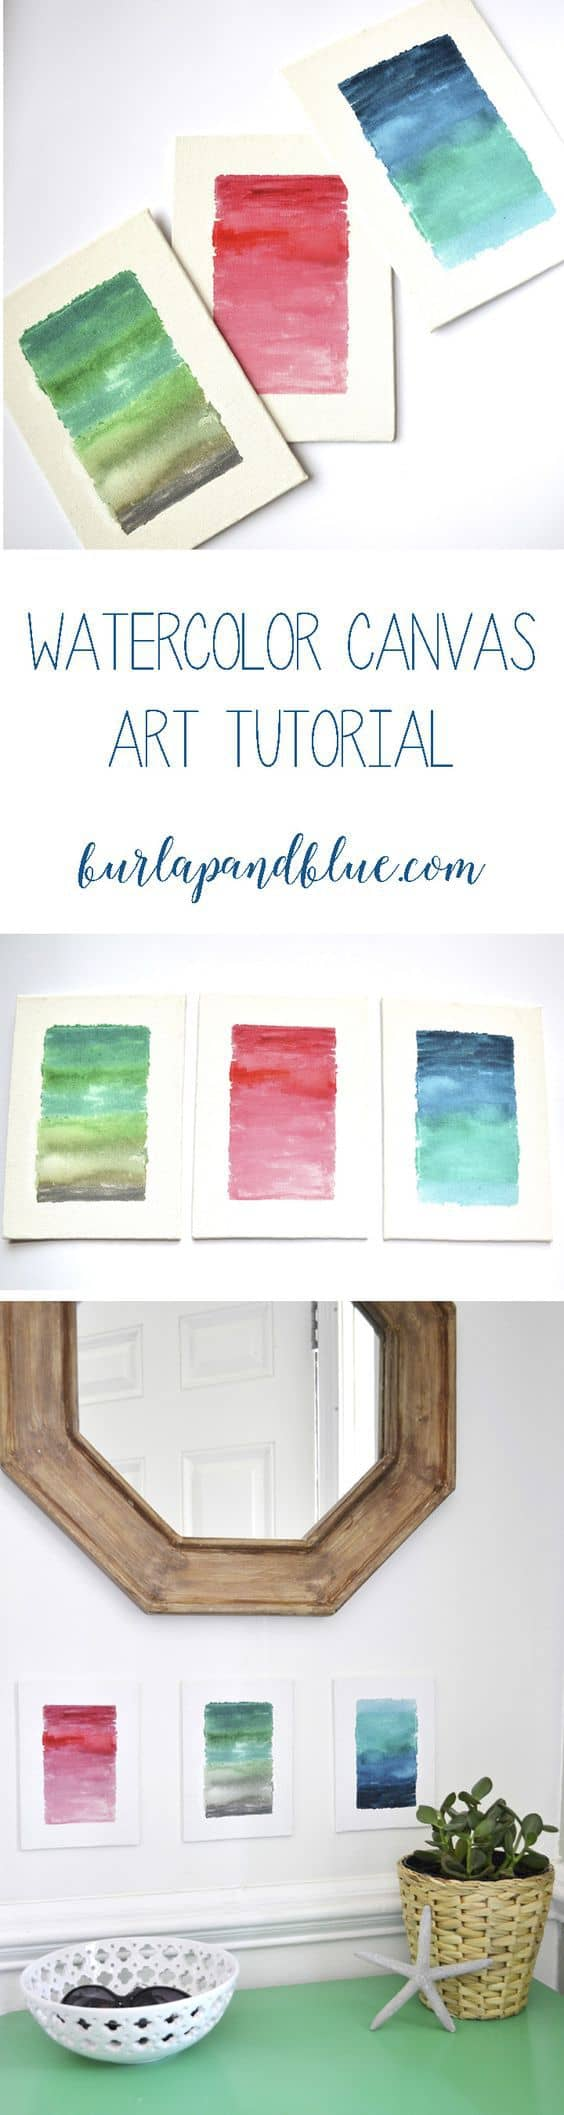 how to make watercolor canvases